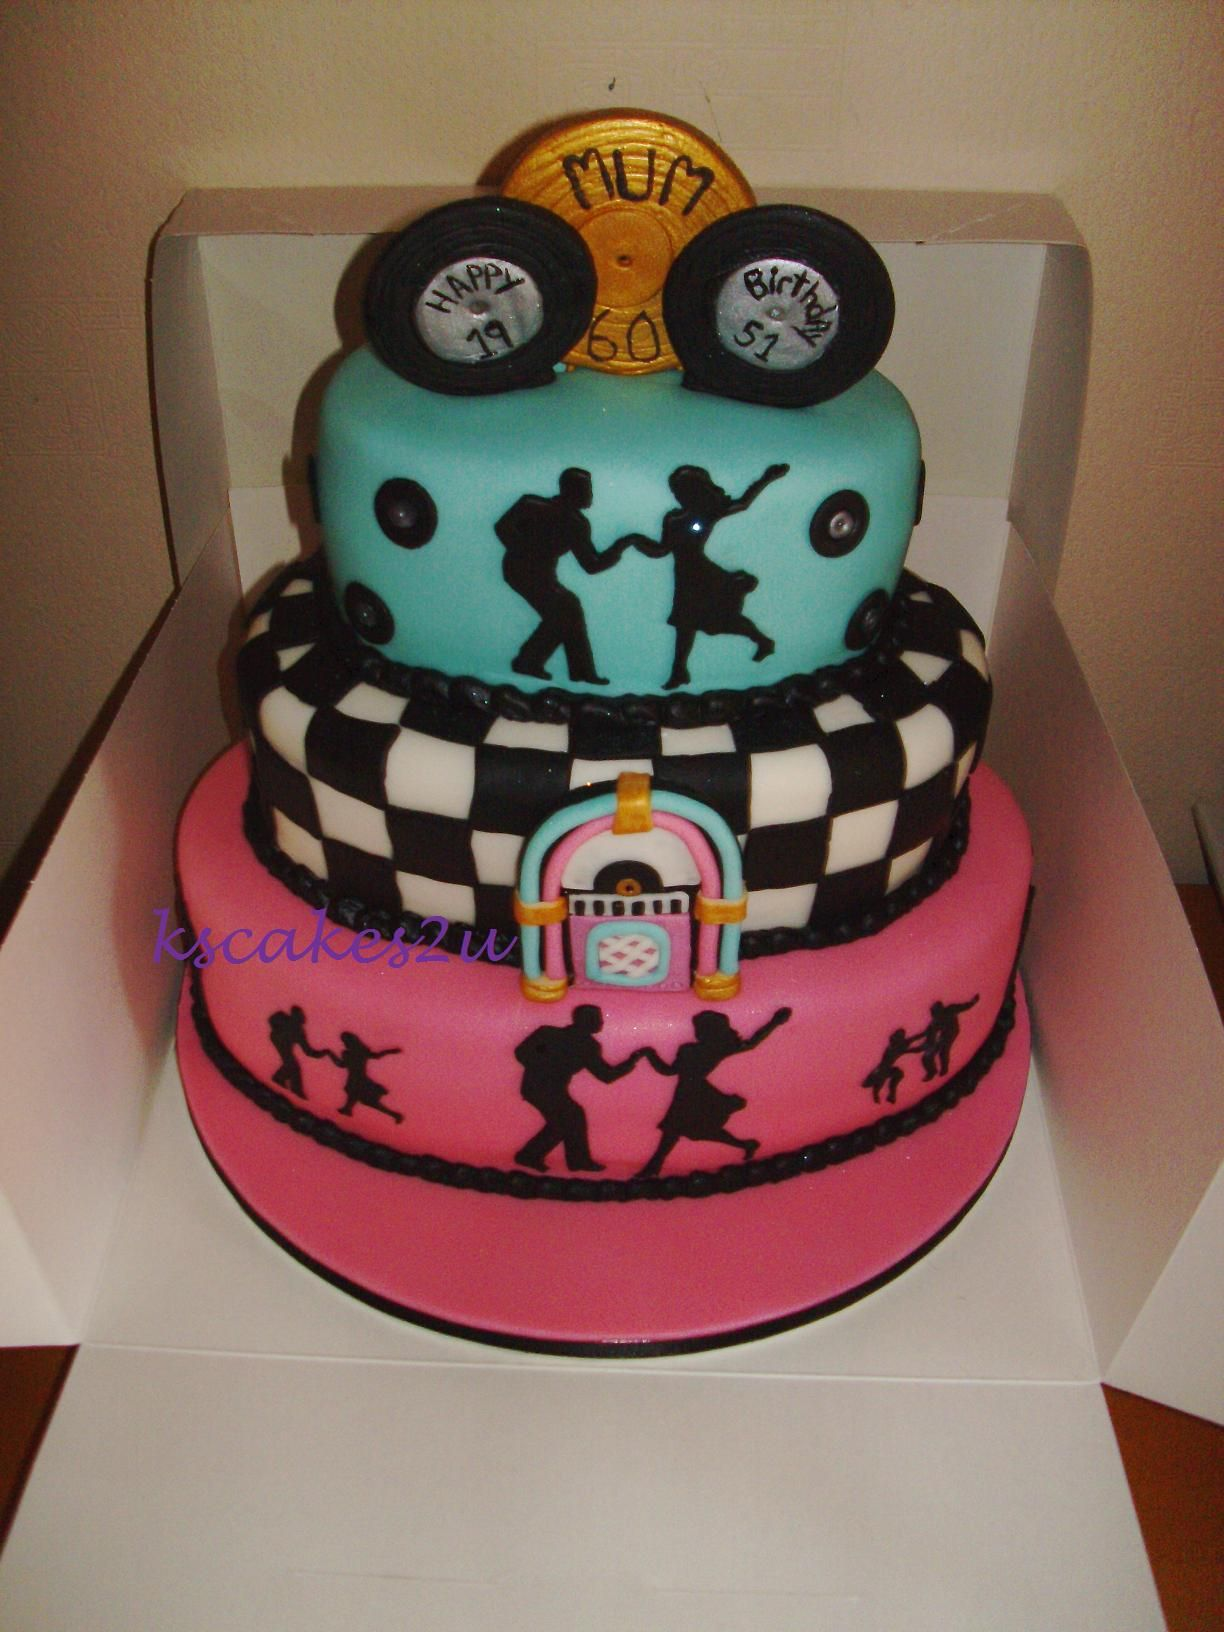 1950 S Theme 3 Tier Oval Birthday Cake With Images Themed